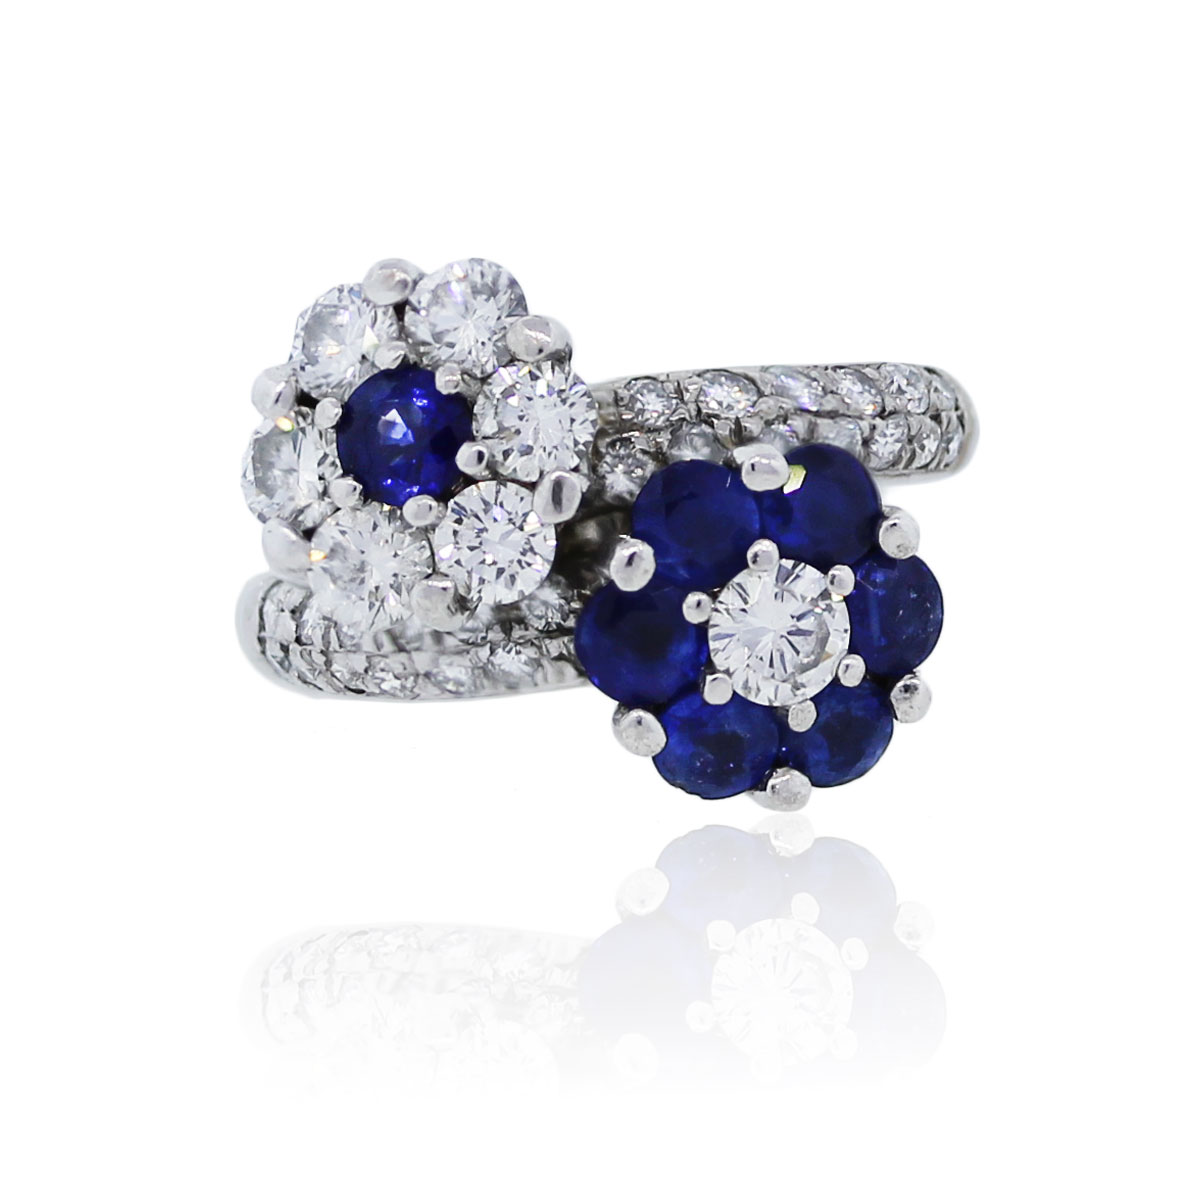 You are viewing this 18k White Gold Diamond Sapphire Flower Ring!